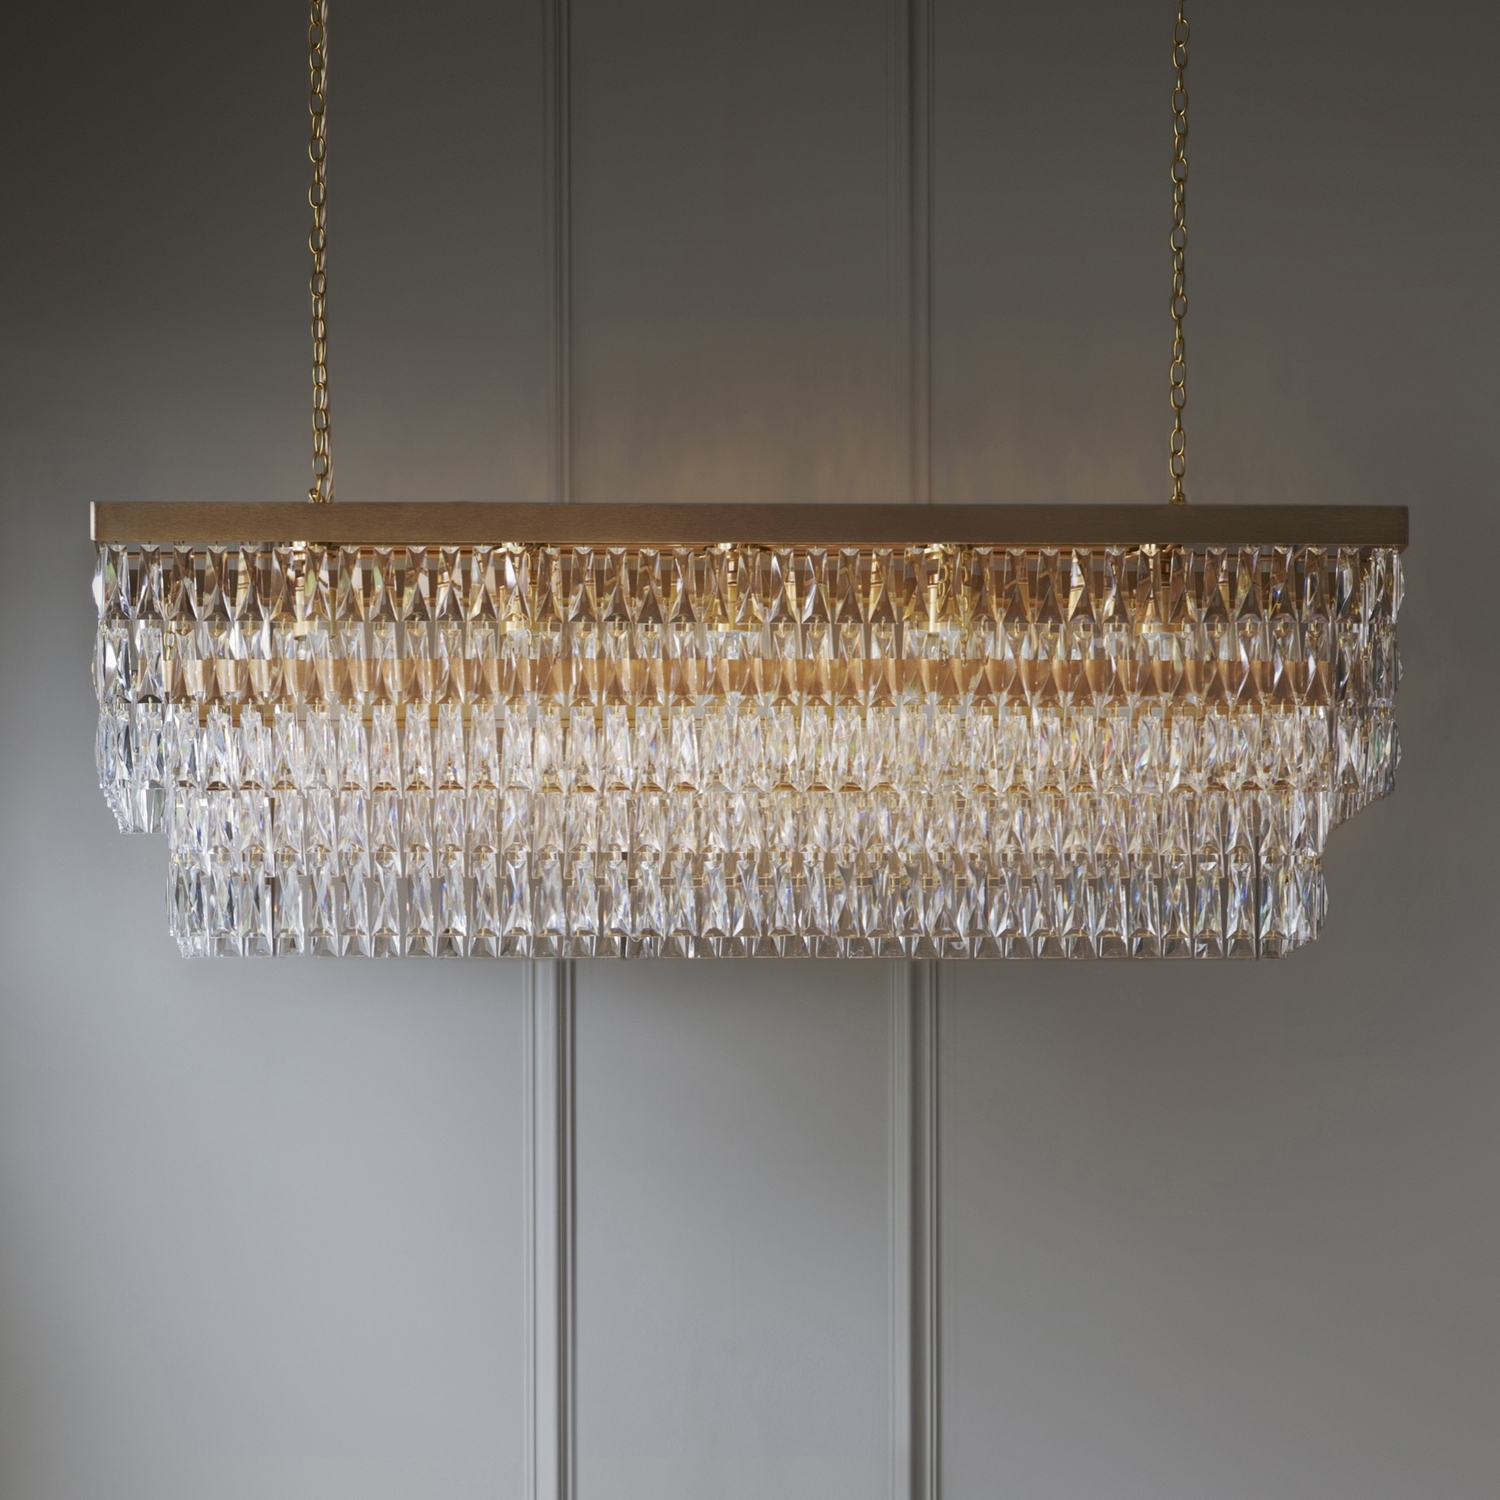 Most Recently Released Clear Crystal Rectangular Chandelier – Tigermoth Lighting Intended For Crystal Gold Chandeliers (View 10 of 20)